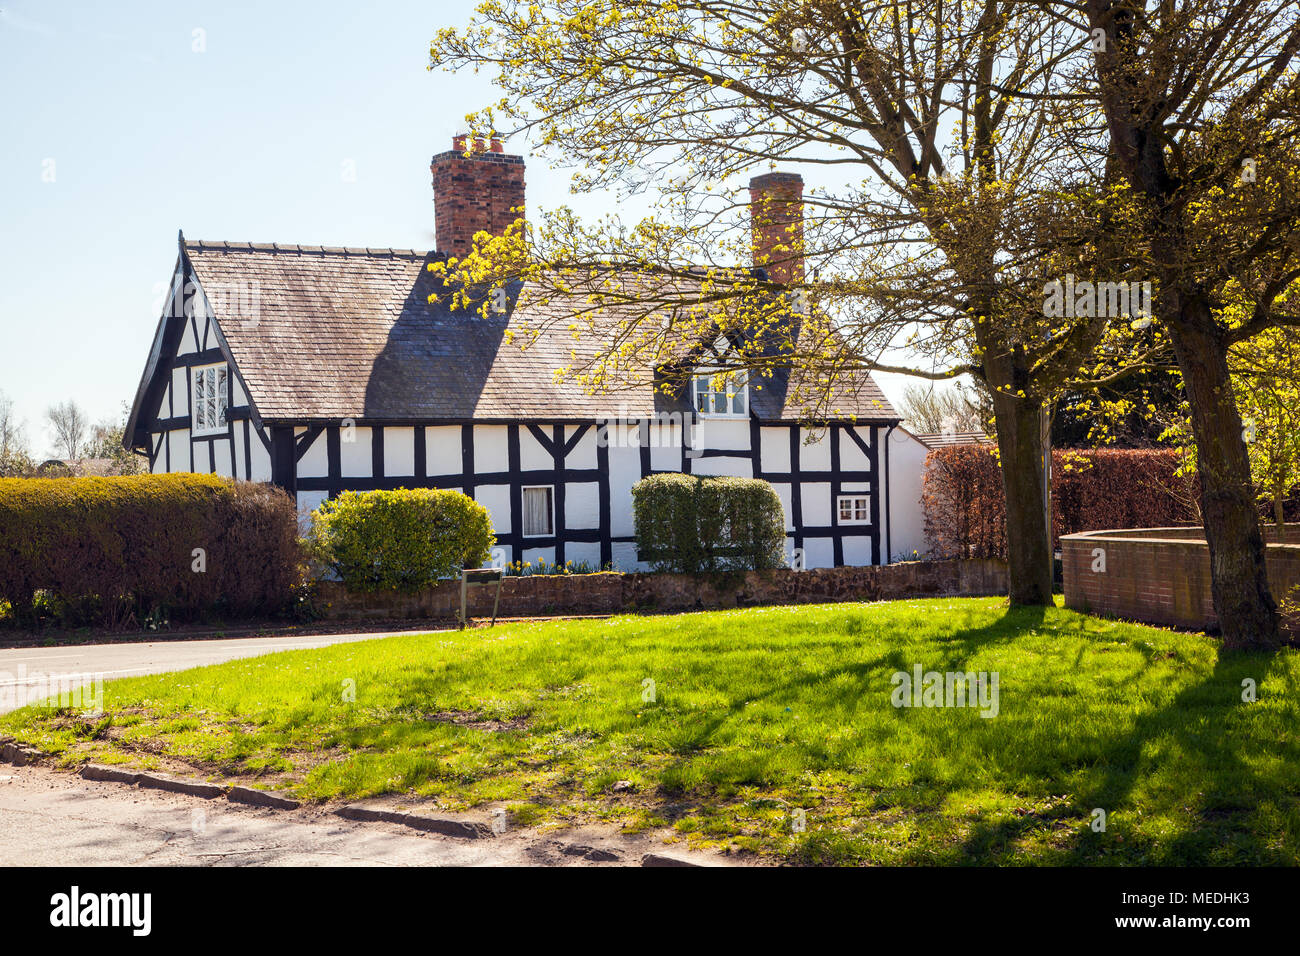 Black and white half timbered country cottage off the village green in the Cheshire village of Wrenbury in springtime - Stock Image